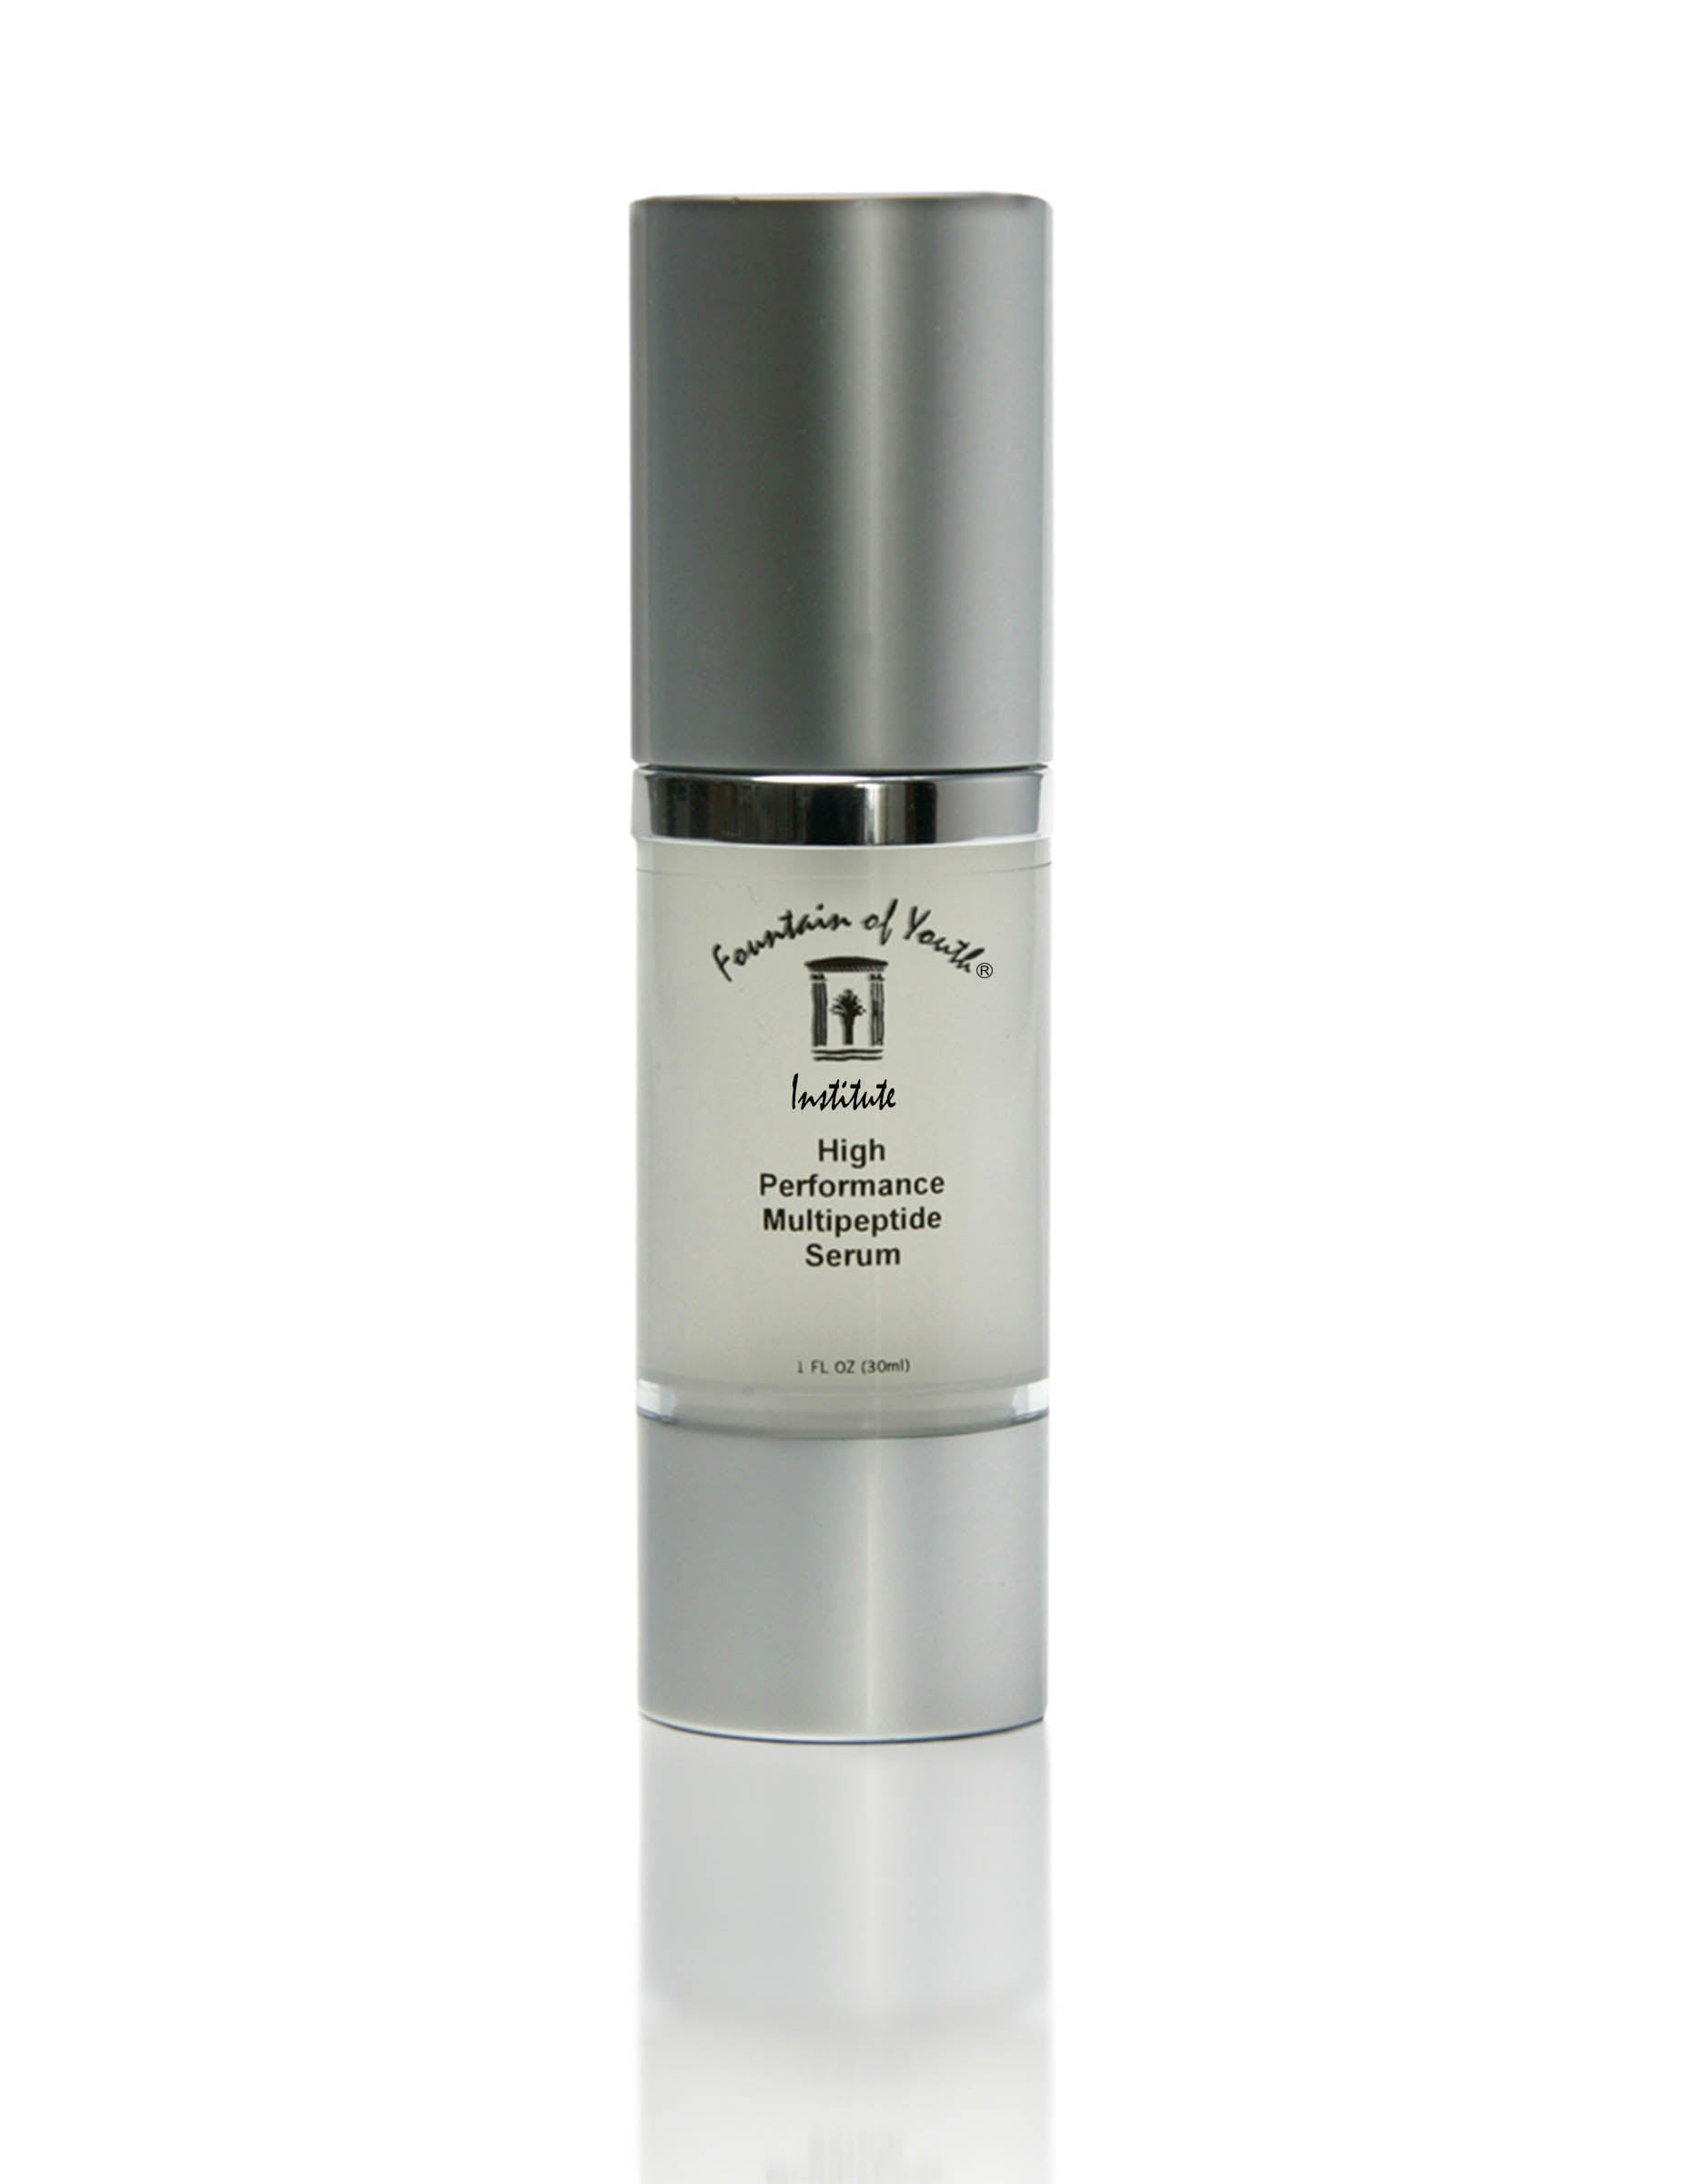 High Performance Multi Peptide Serum